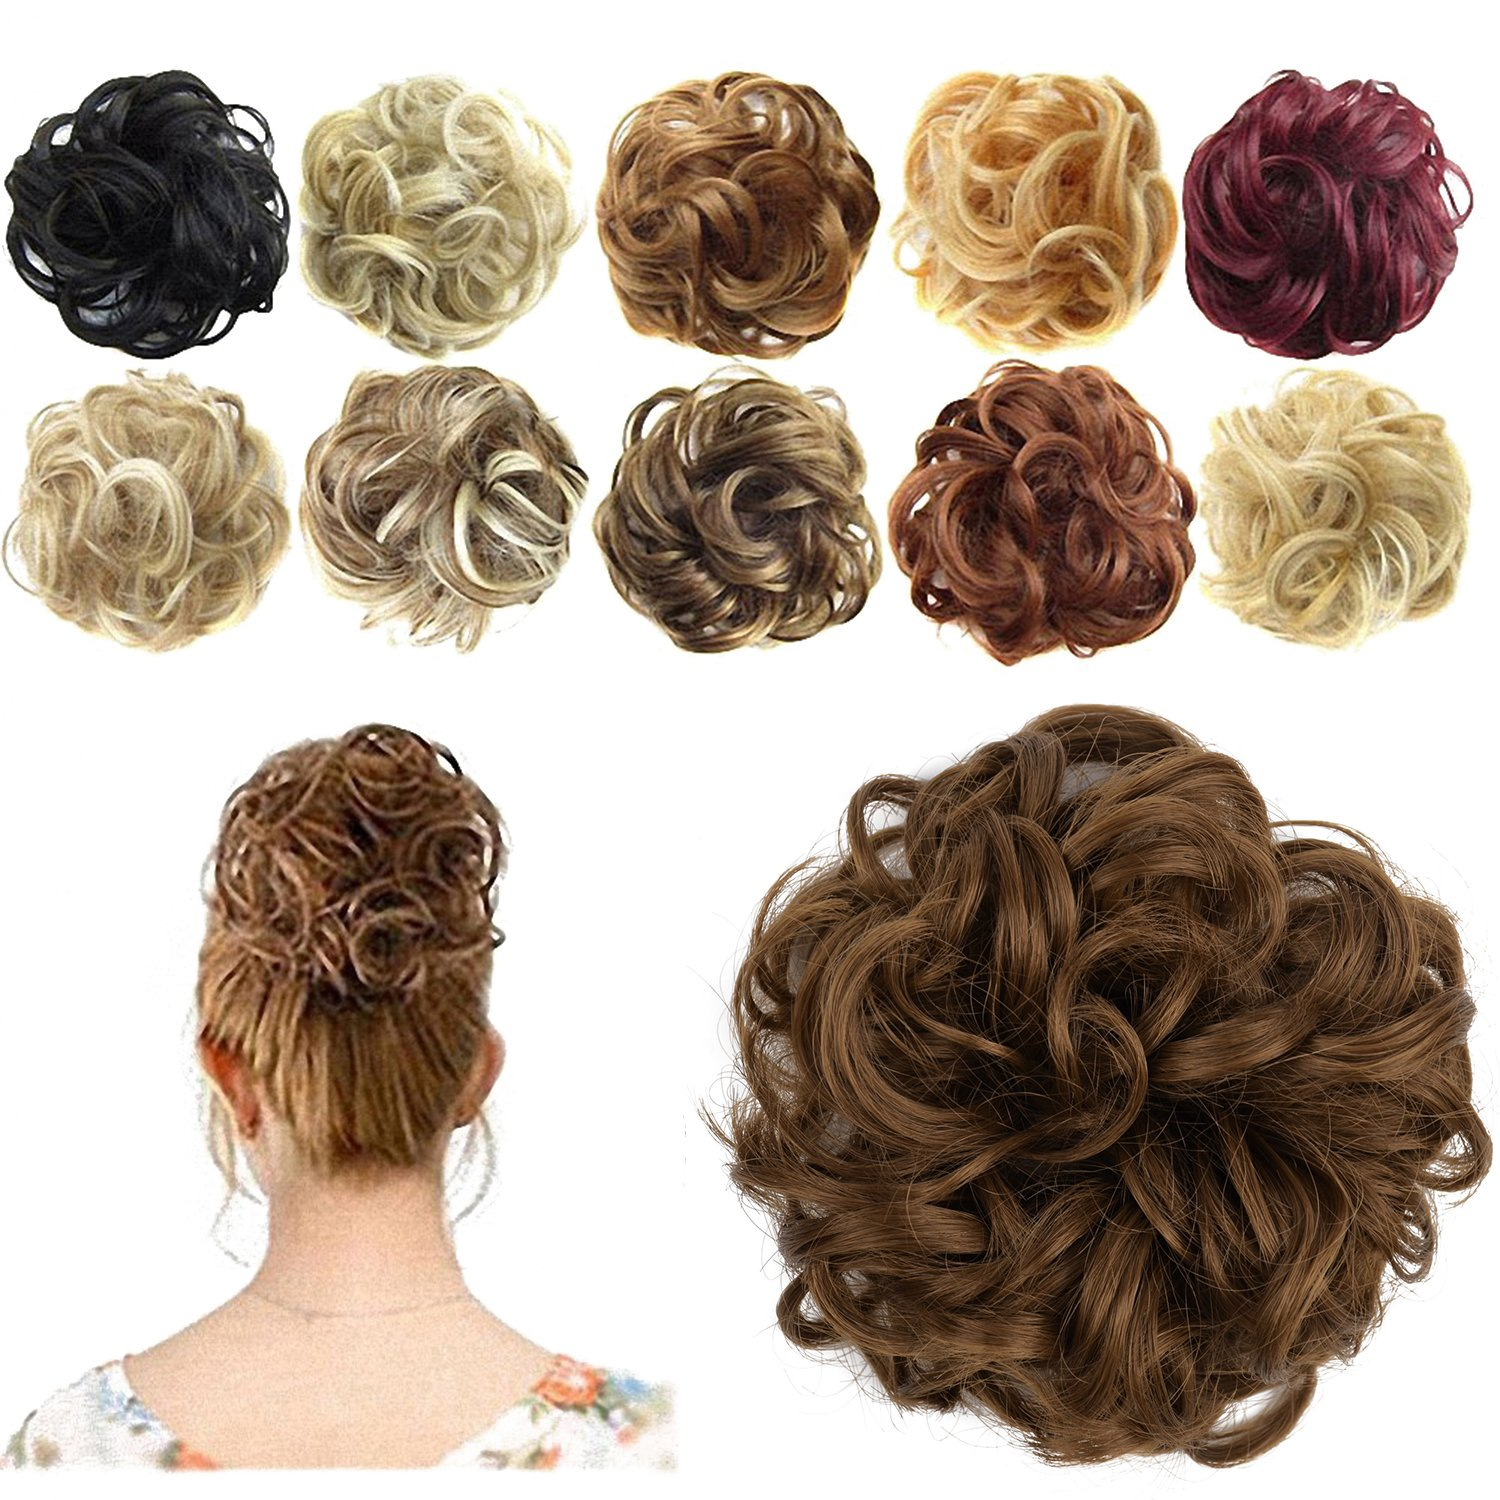 FESHFEN Messy Hair Scrunchies Hair Bun Extensions Curly Wavy Hair Pieces For Women Updo Ponytail Hair Extensions Hair Donut Hair Chignons Hair Accessories - A11 Black & Burgundy